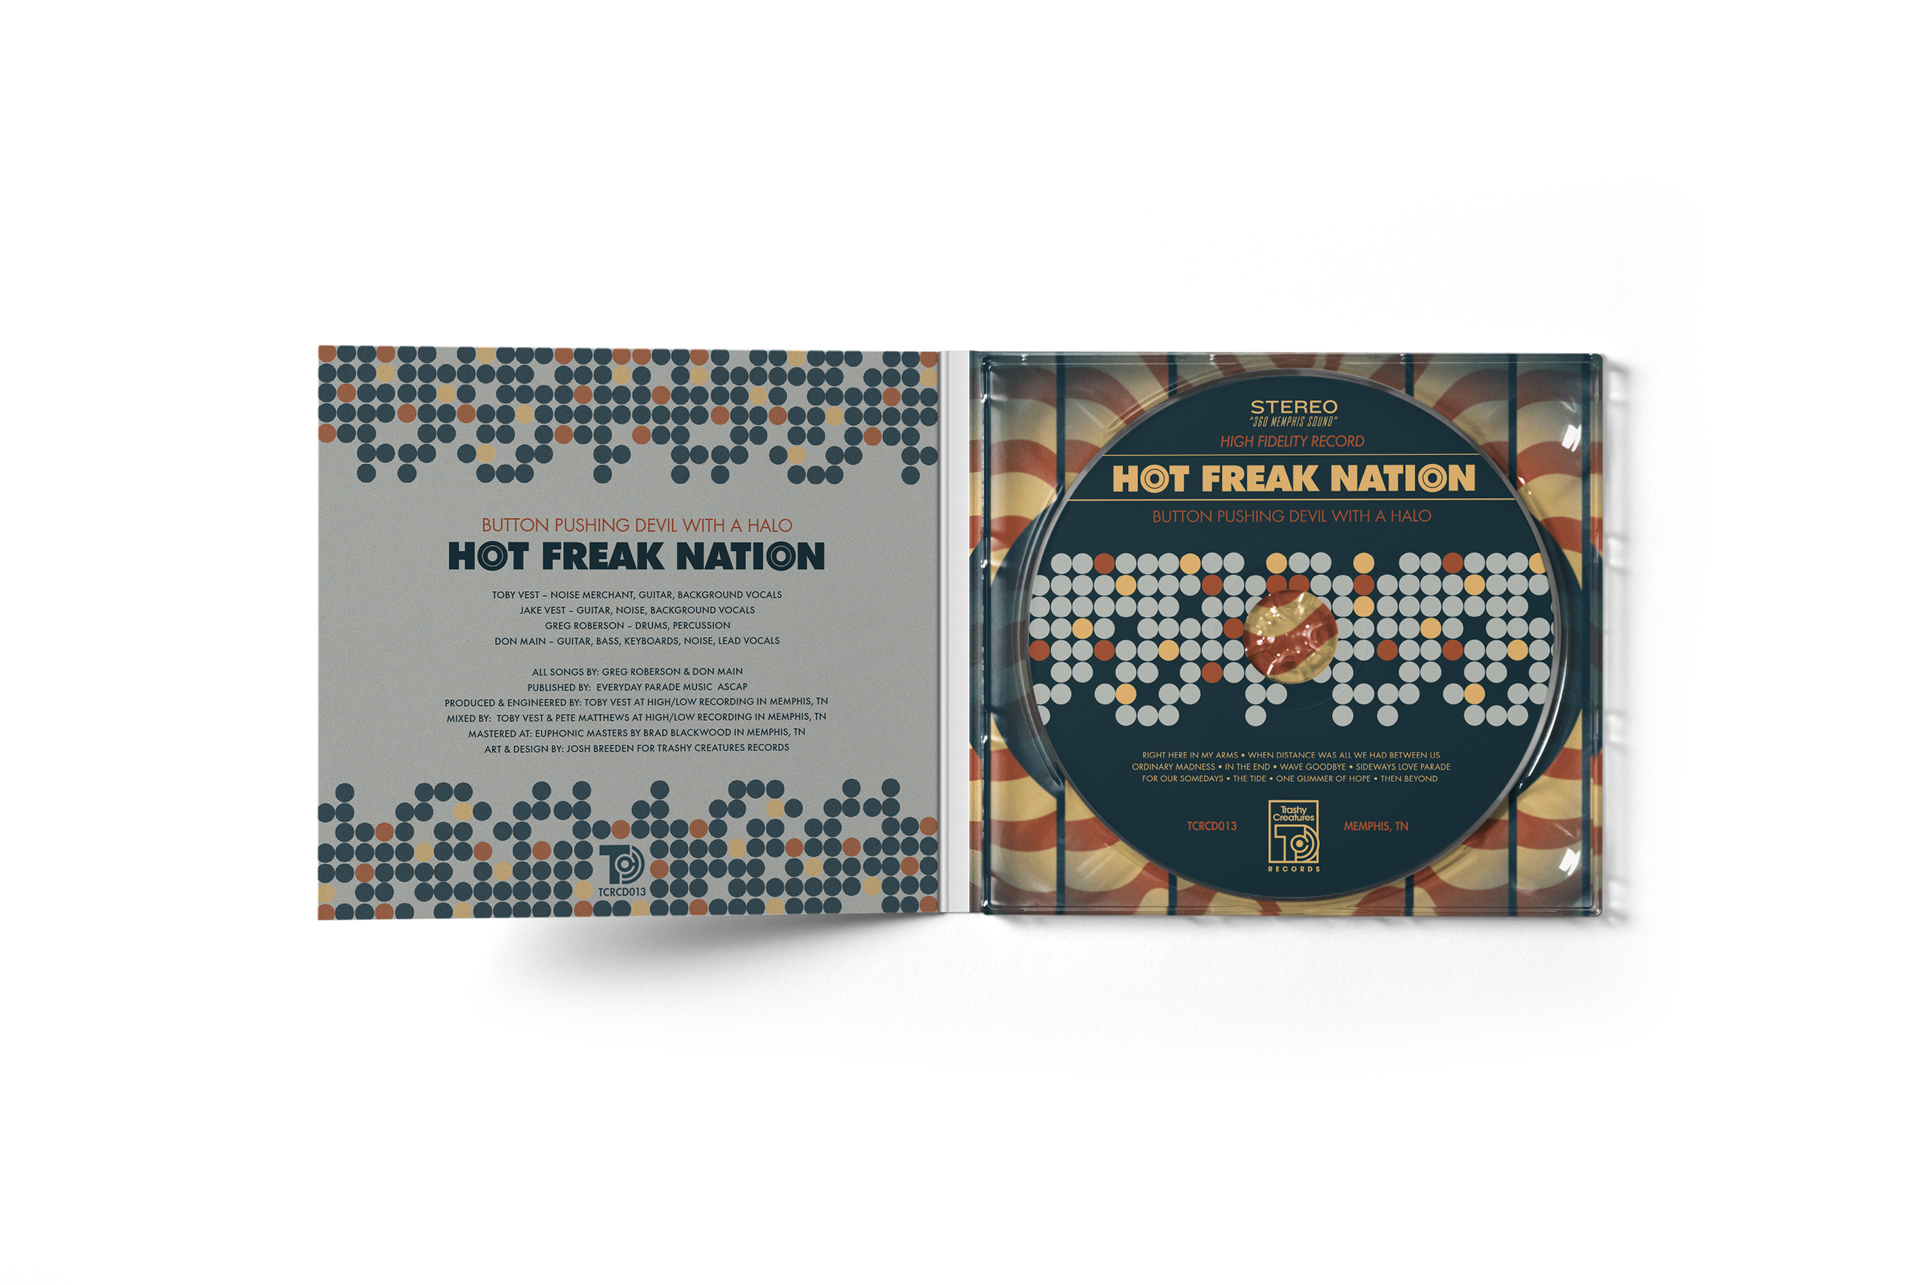 HFN-ButtonPushing-Digipak-Mockup-Interior.jpg